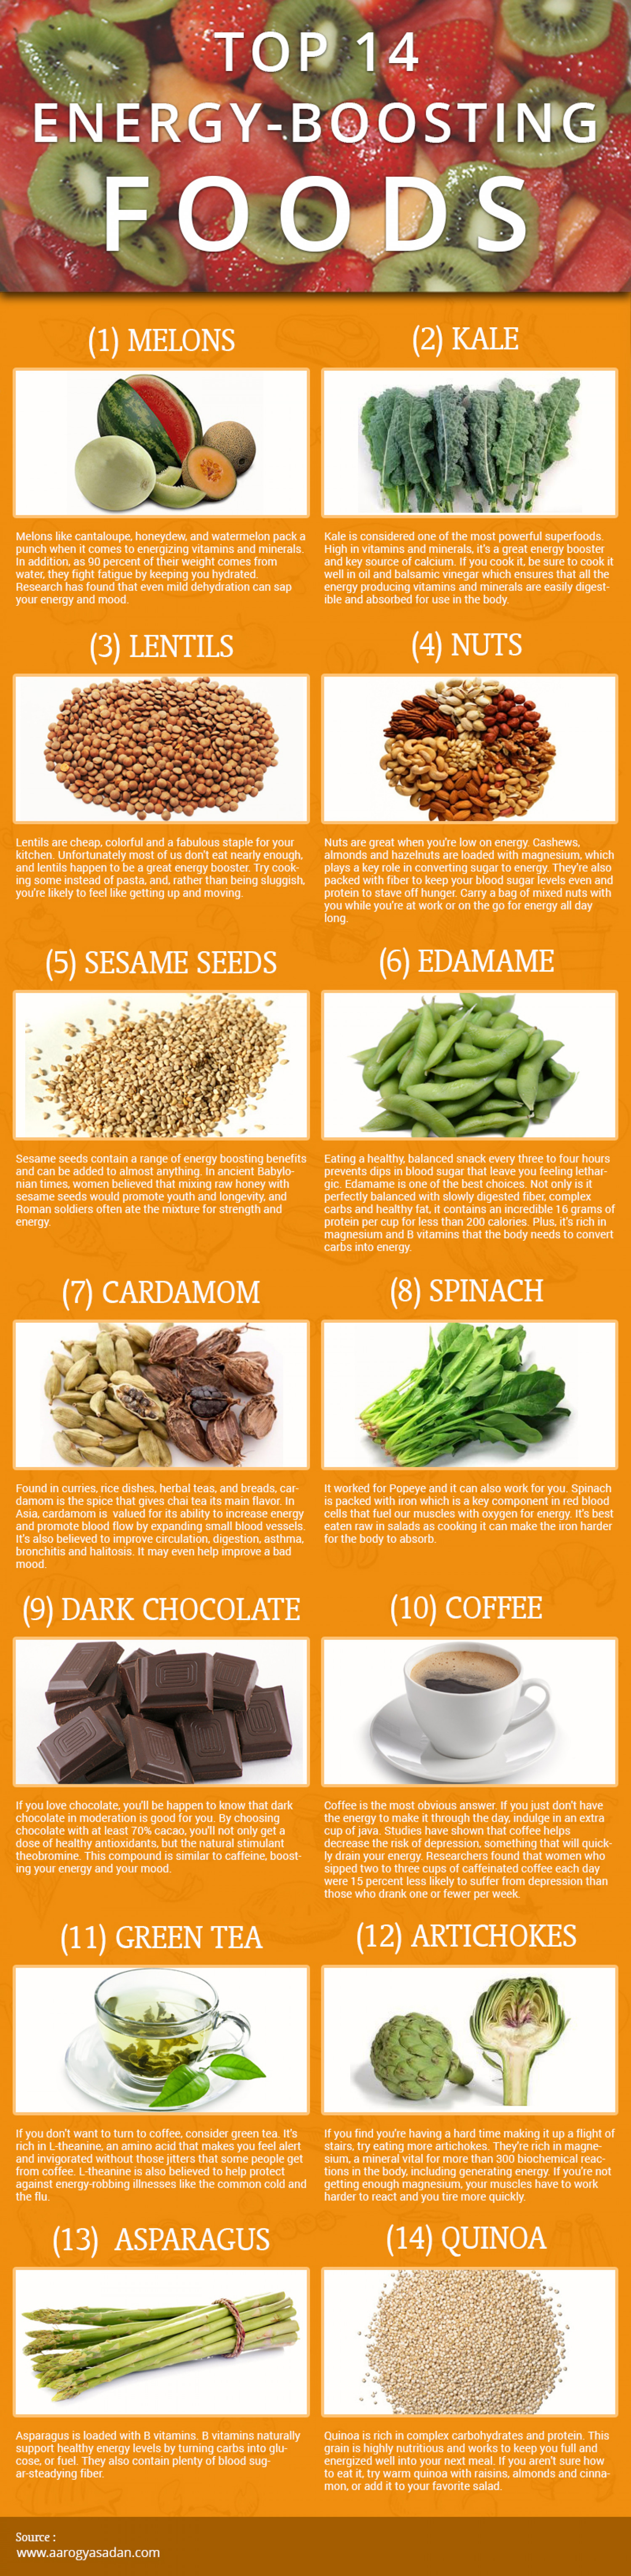 Top 14 Energy Boosting Foods Infographic